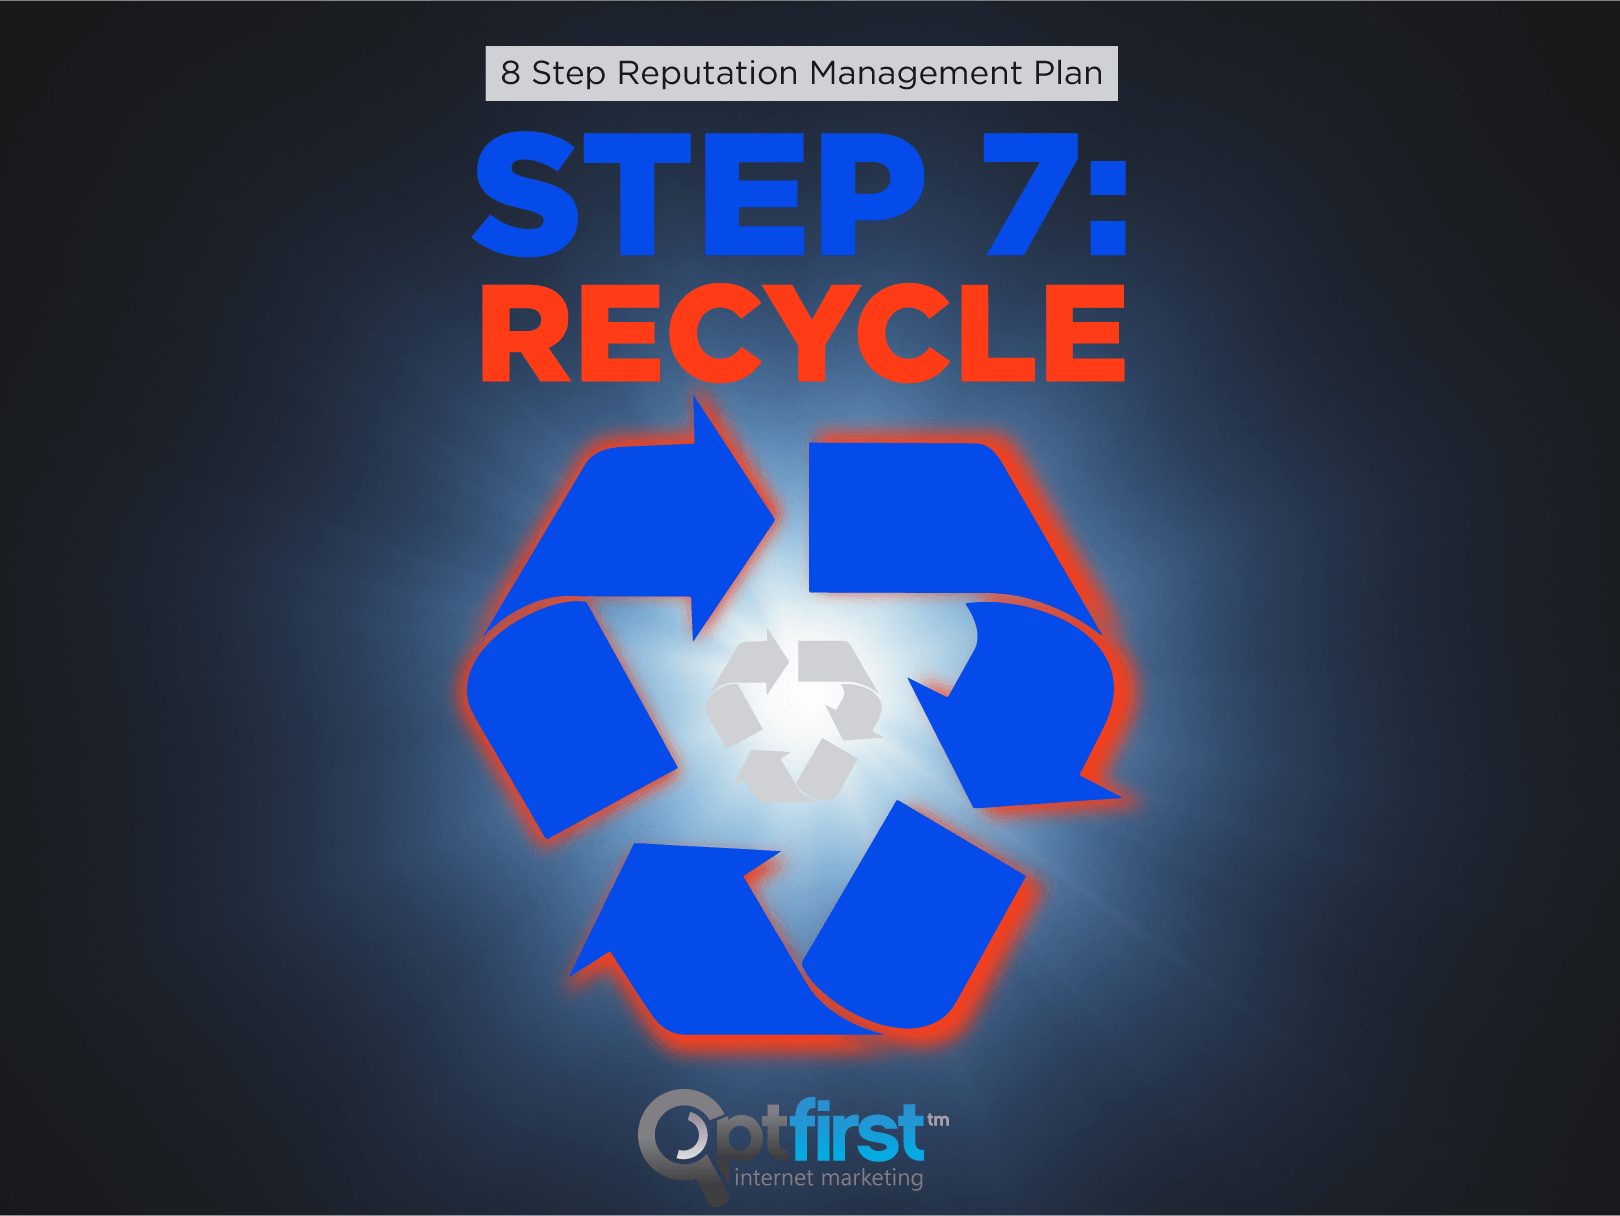 8 Step Reputation Management Plan Step 7: Recycle